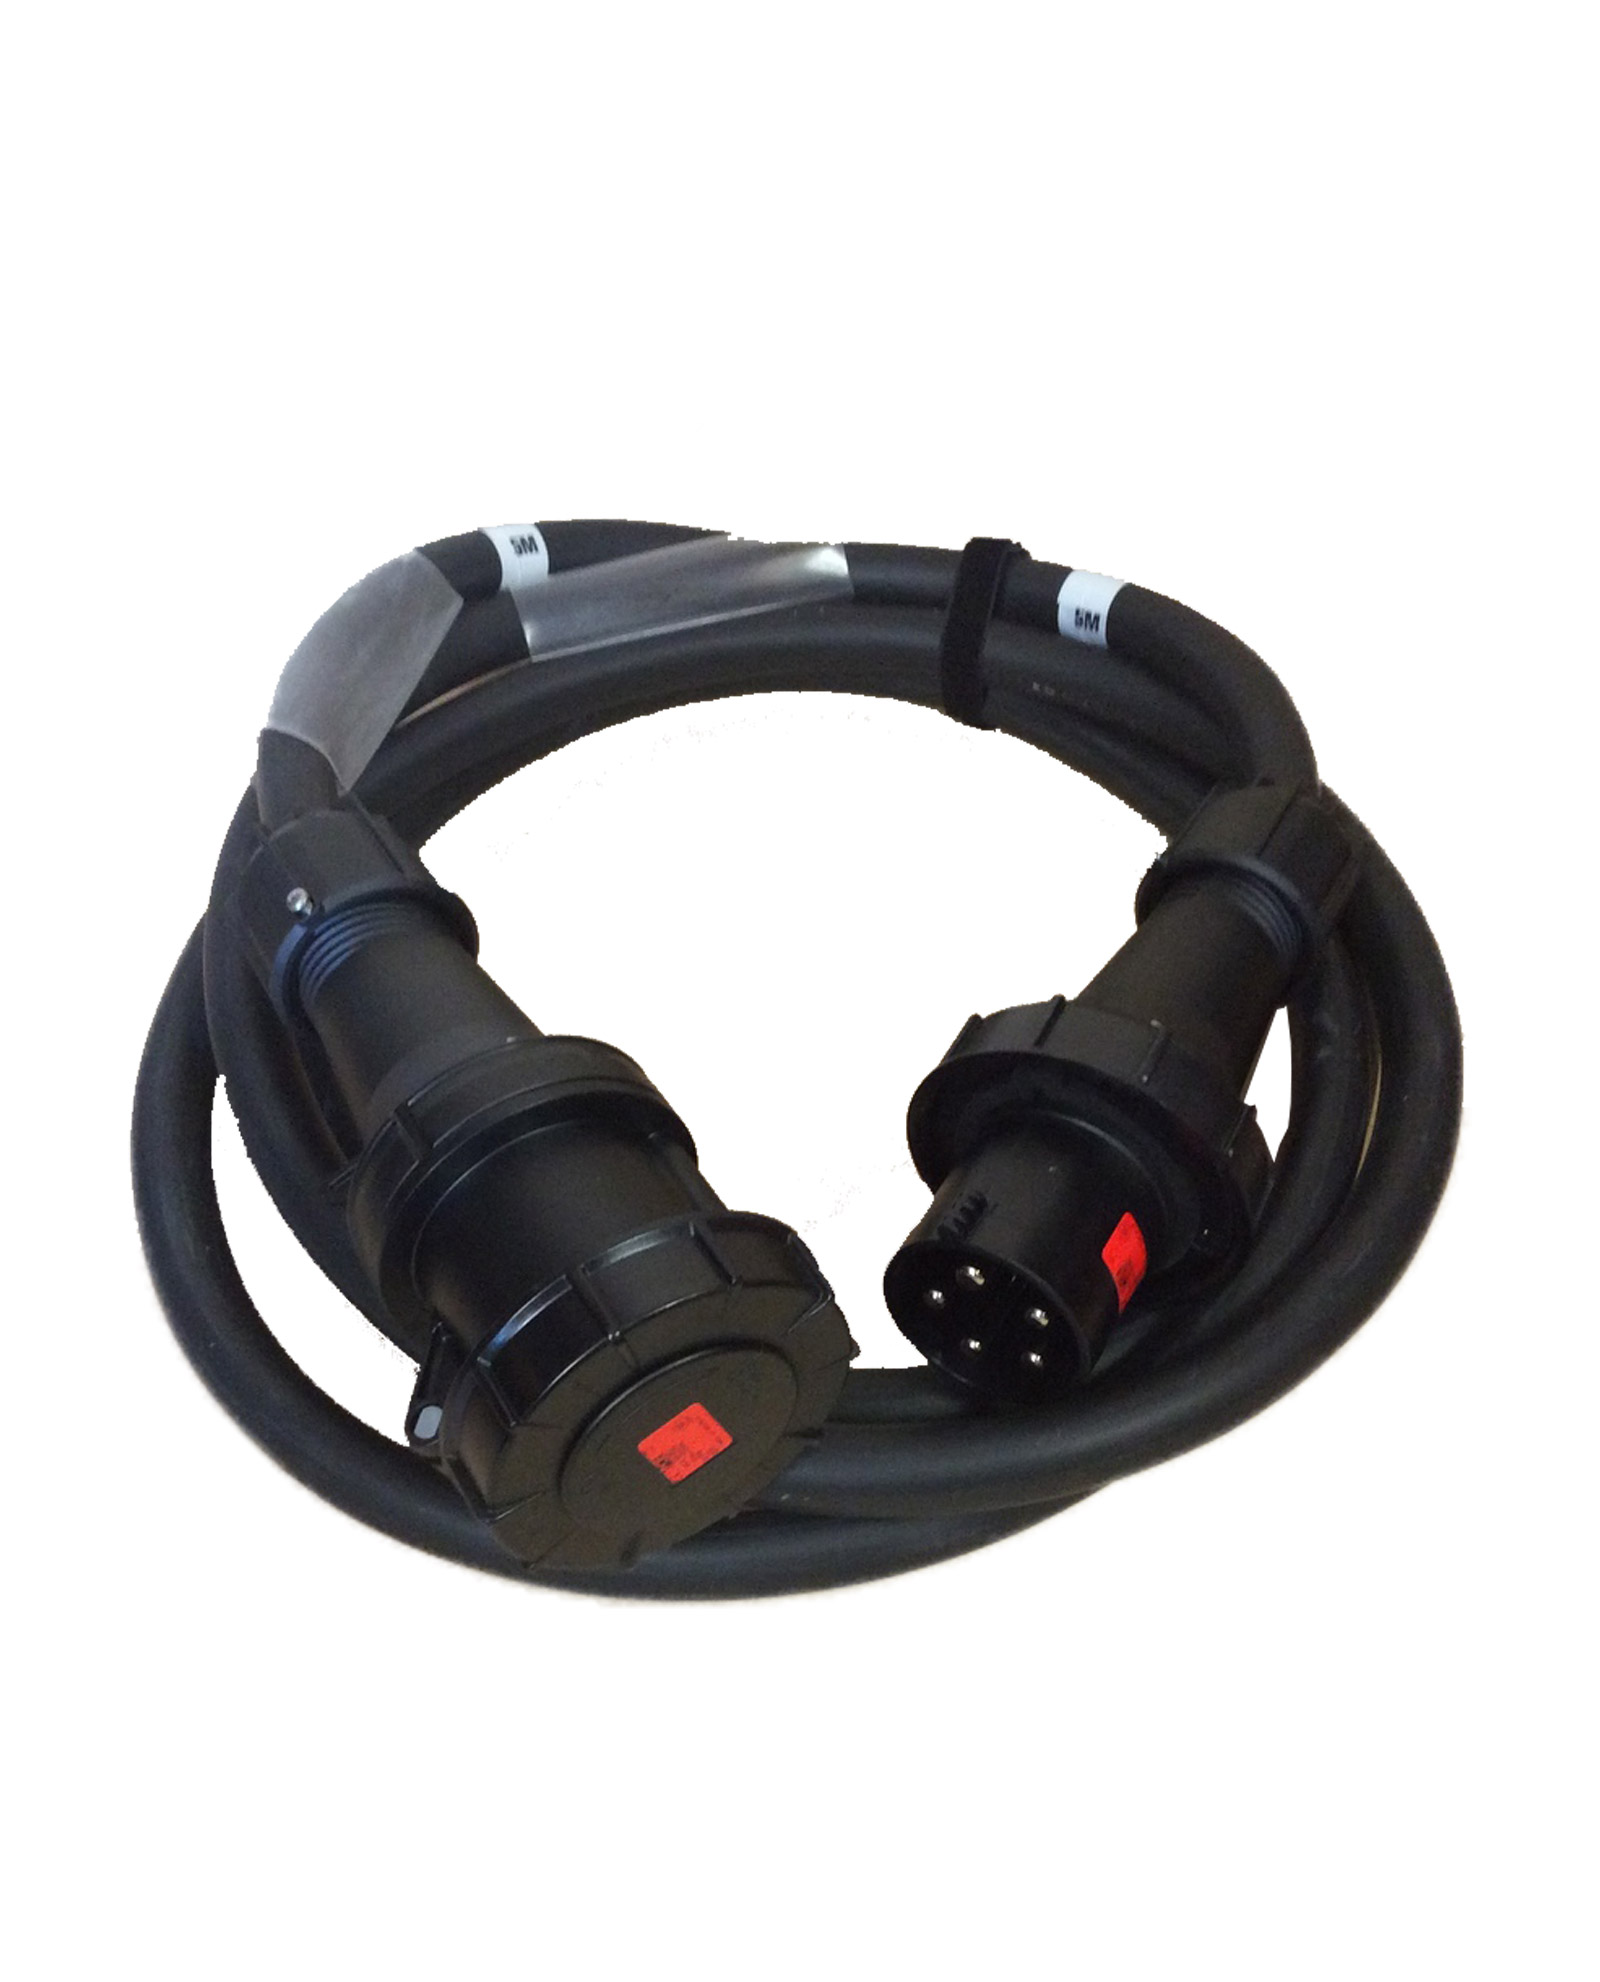 63a Extension Cable